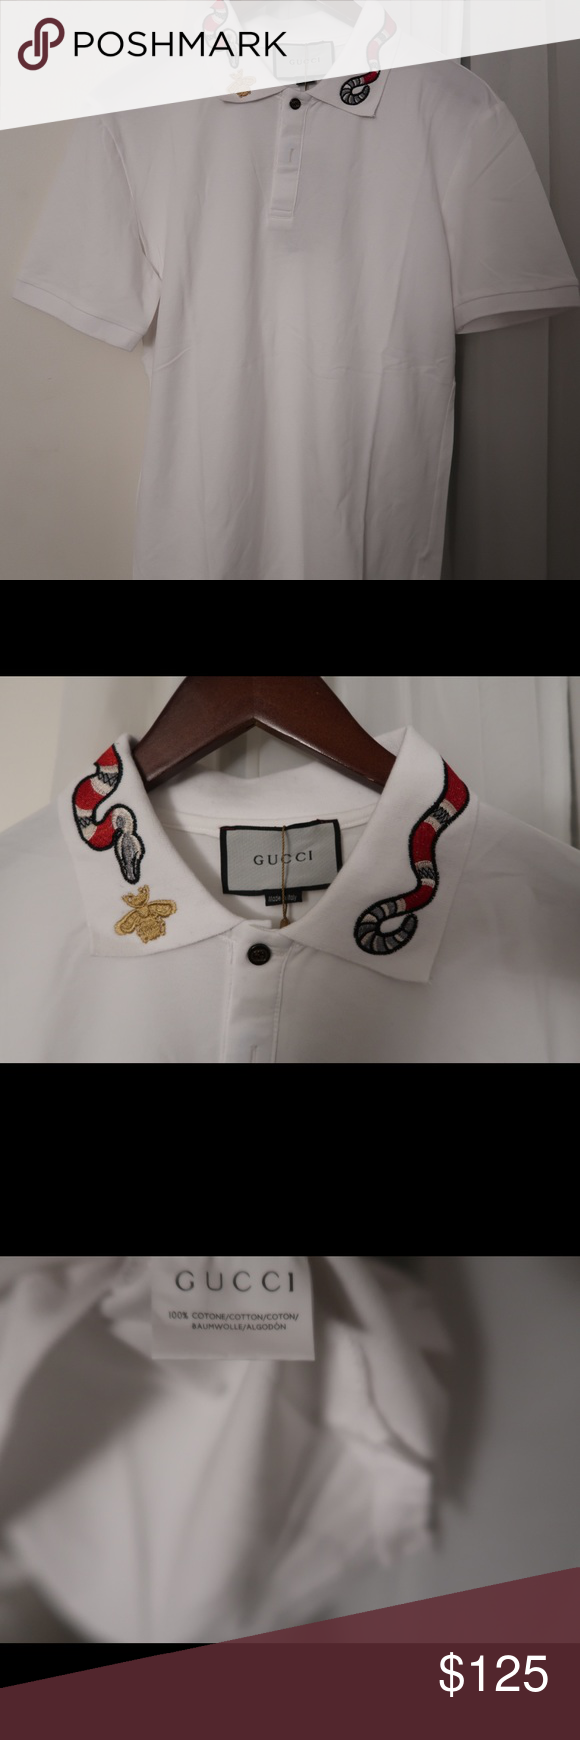 d2bbf0387 Gucci Kingsnake Embroidery Polo Size Large. New With Tags. White Shirts  Polos